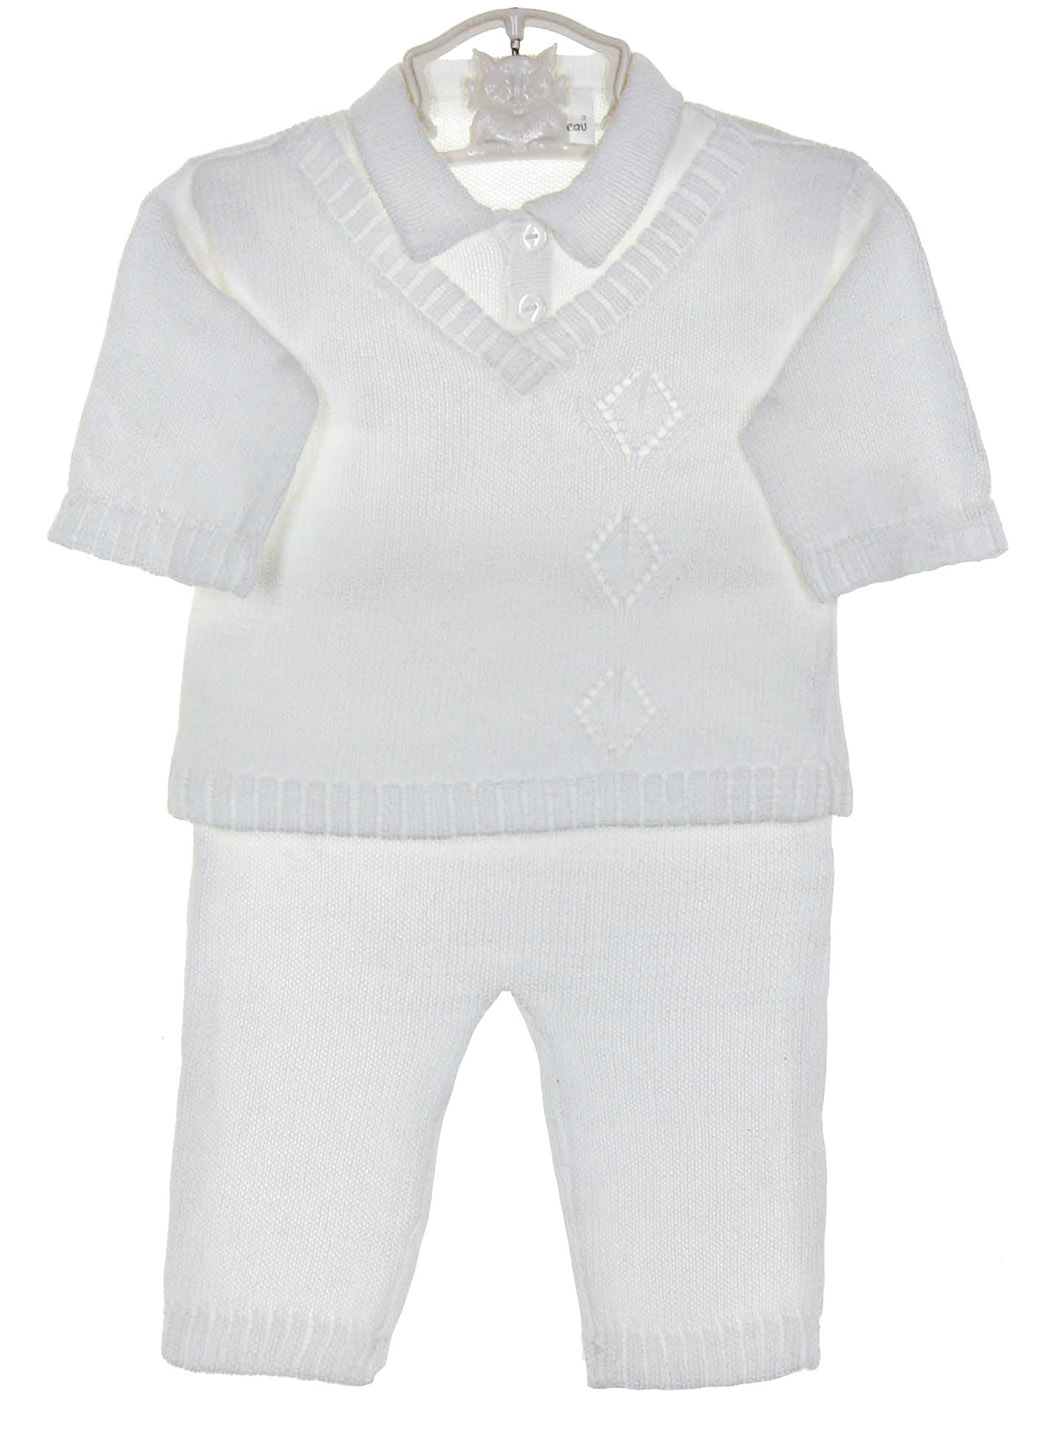 a59cef0b6 Baby s Trousseau white cotton knit pants set with matching hat